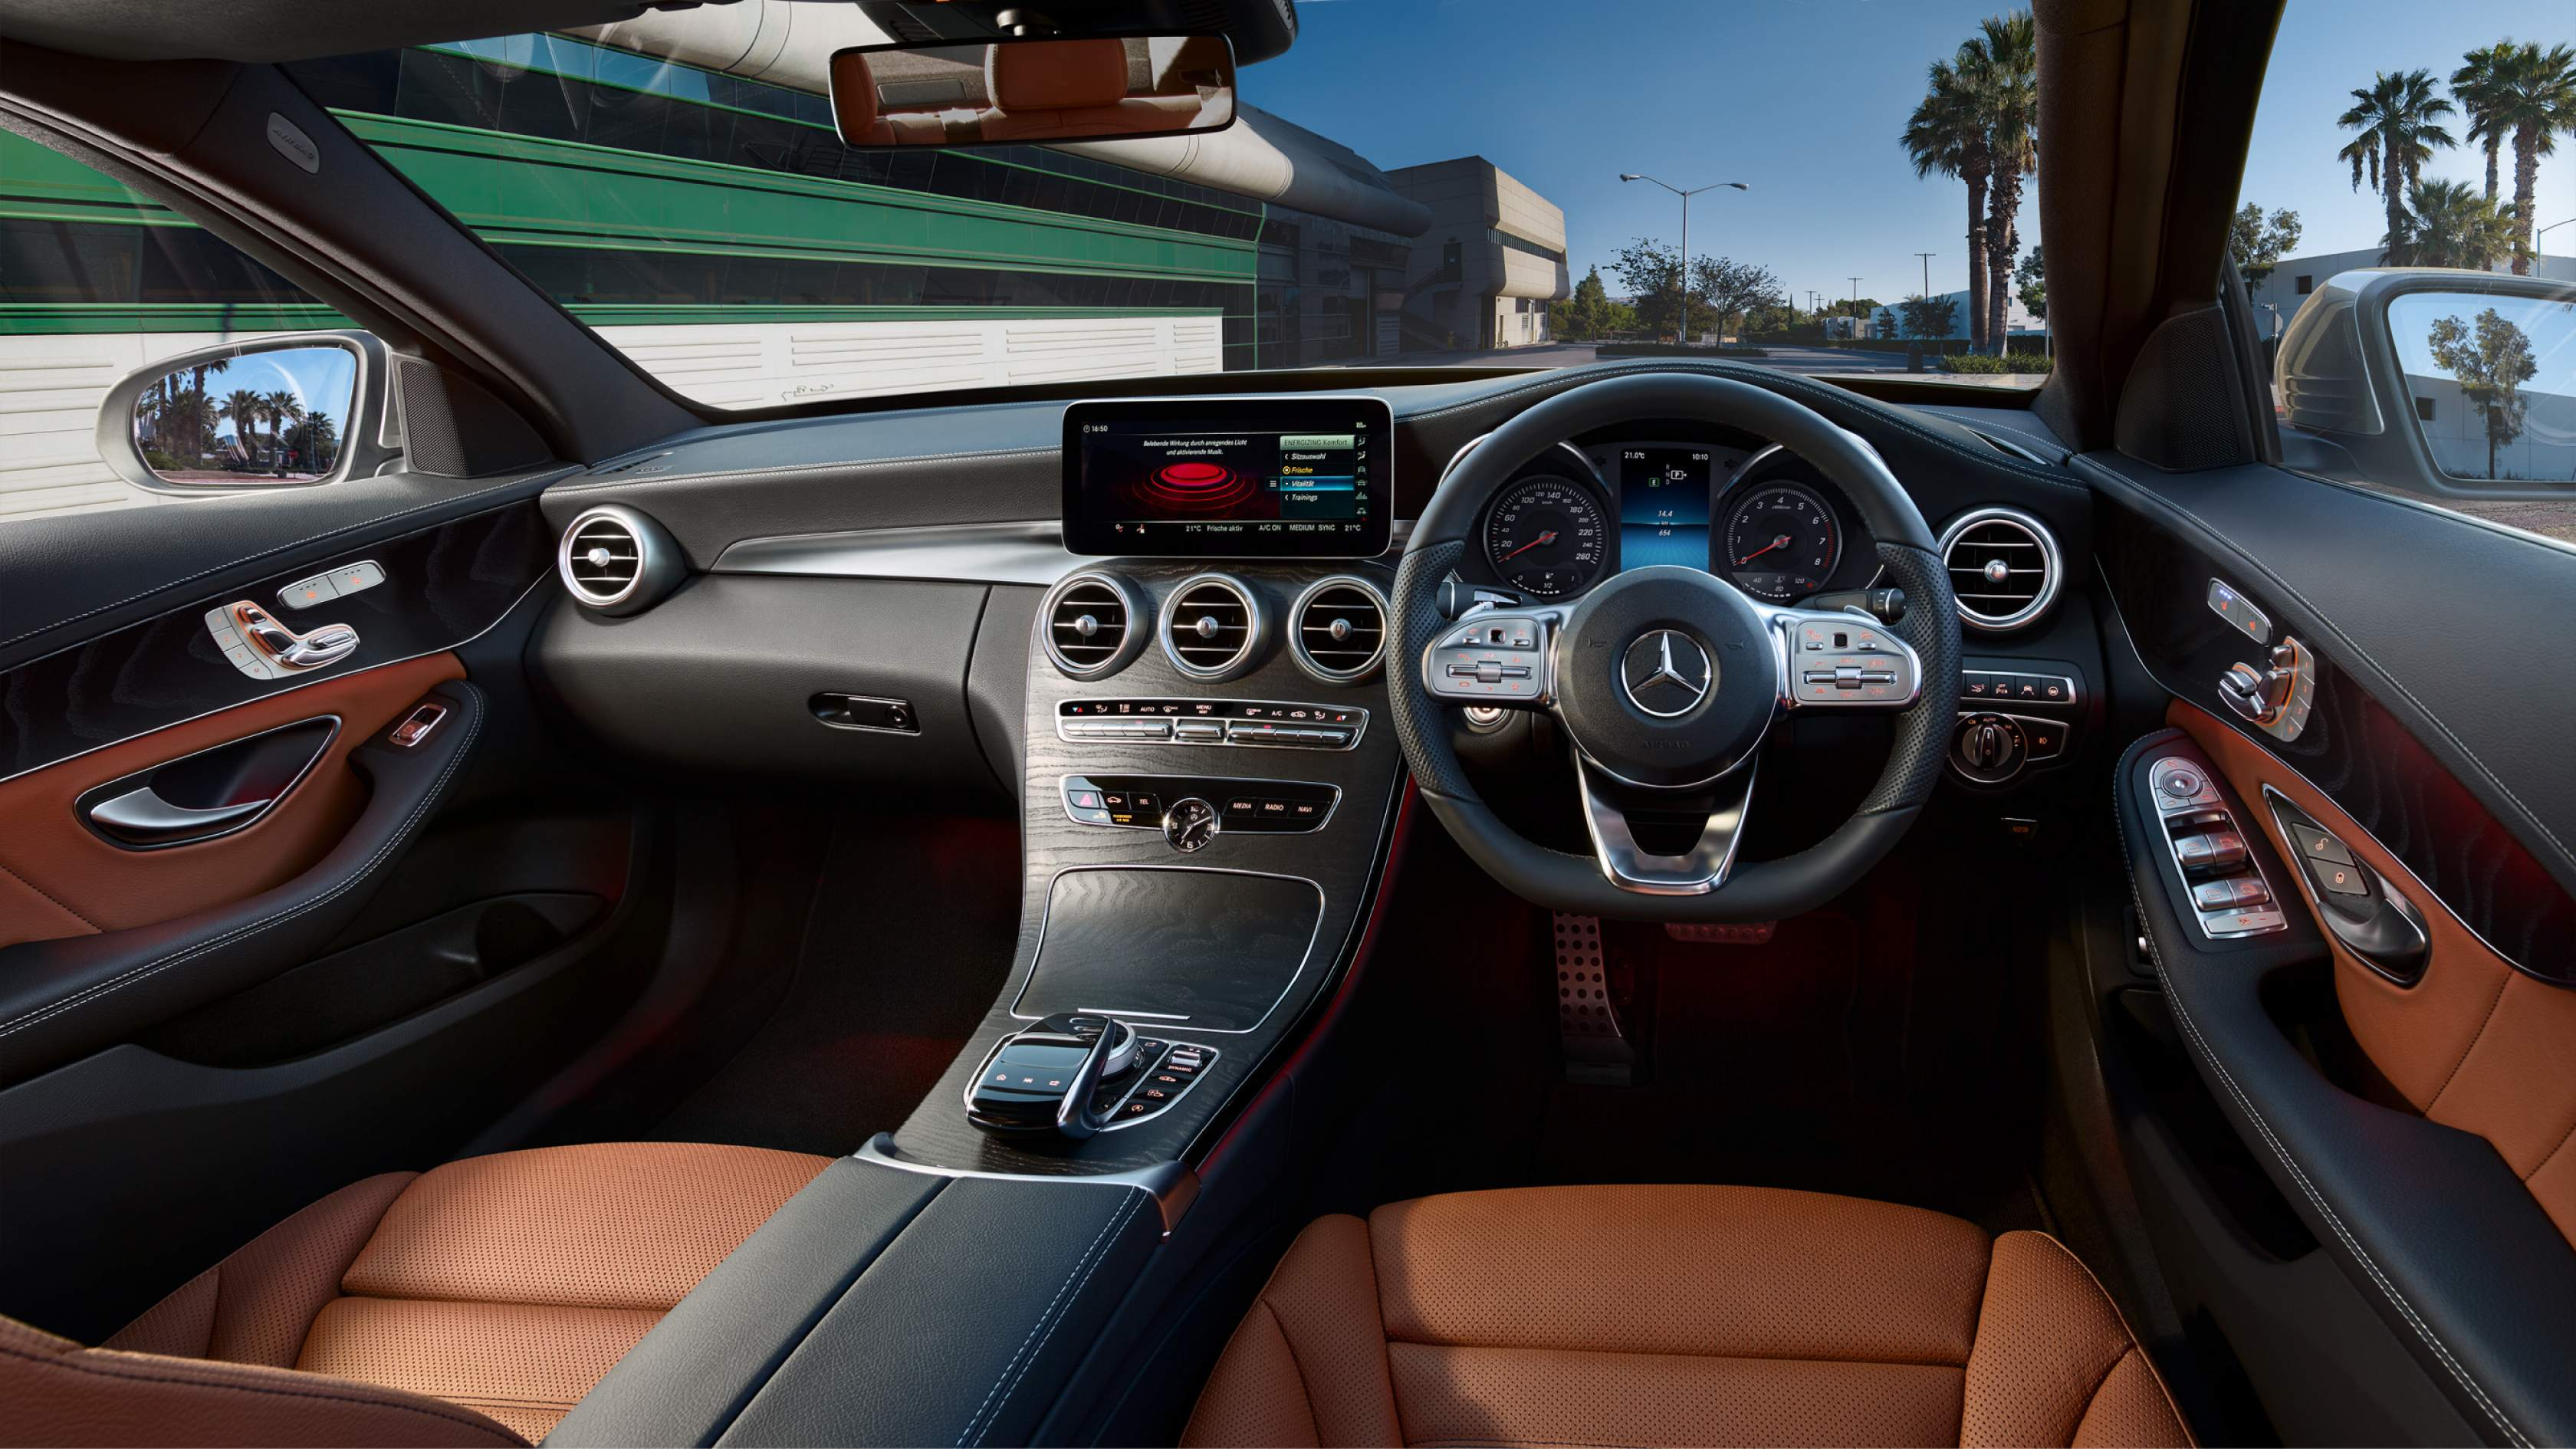 The first example will be shown at the paris motor show. 2018 Mercedes-Benz C-Class facelift launched for INR 40